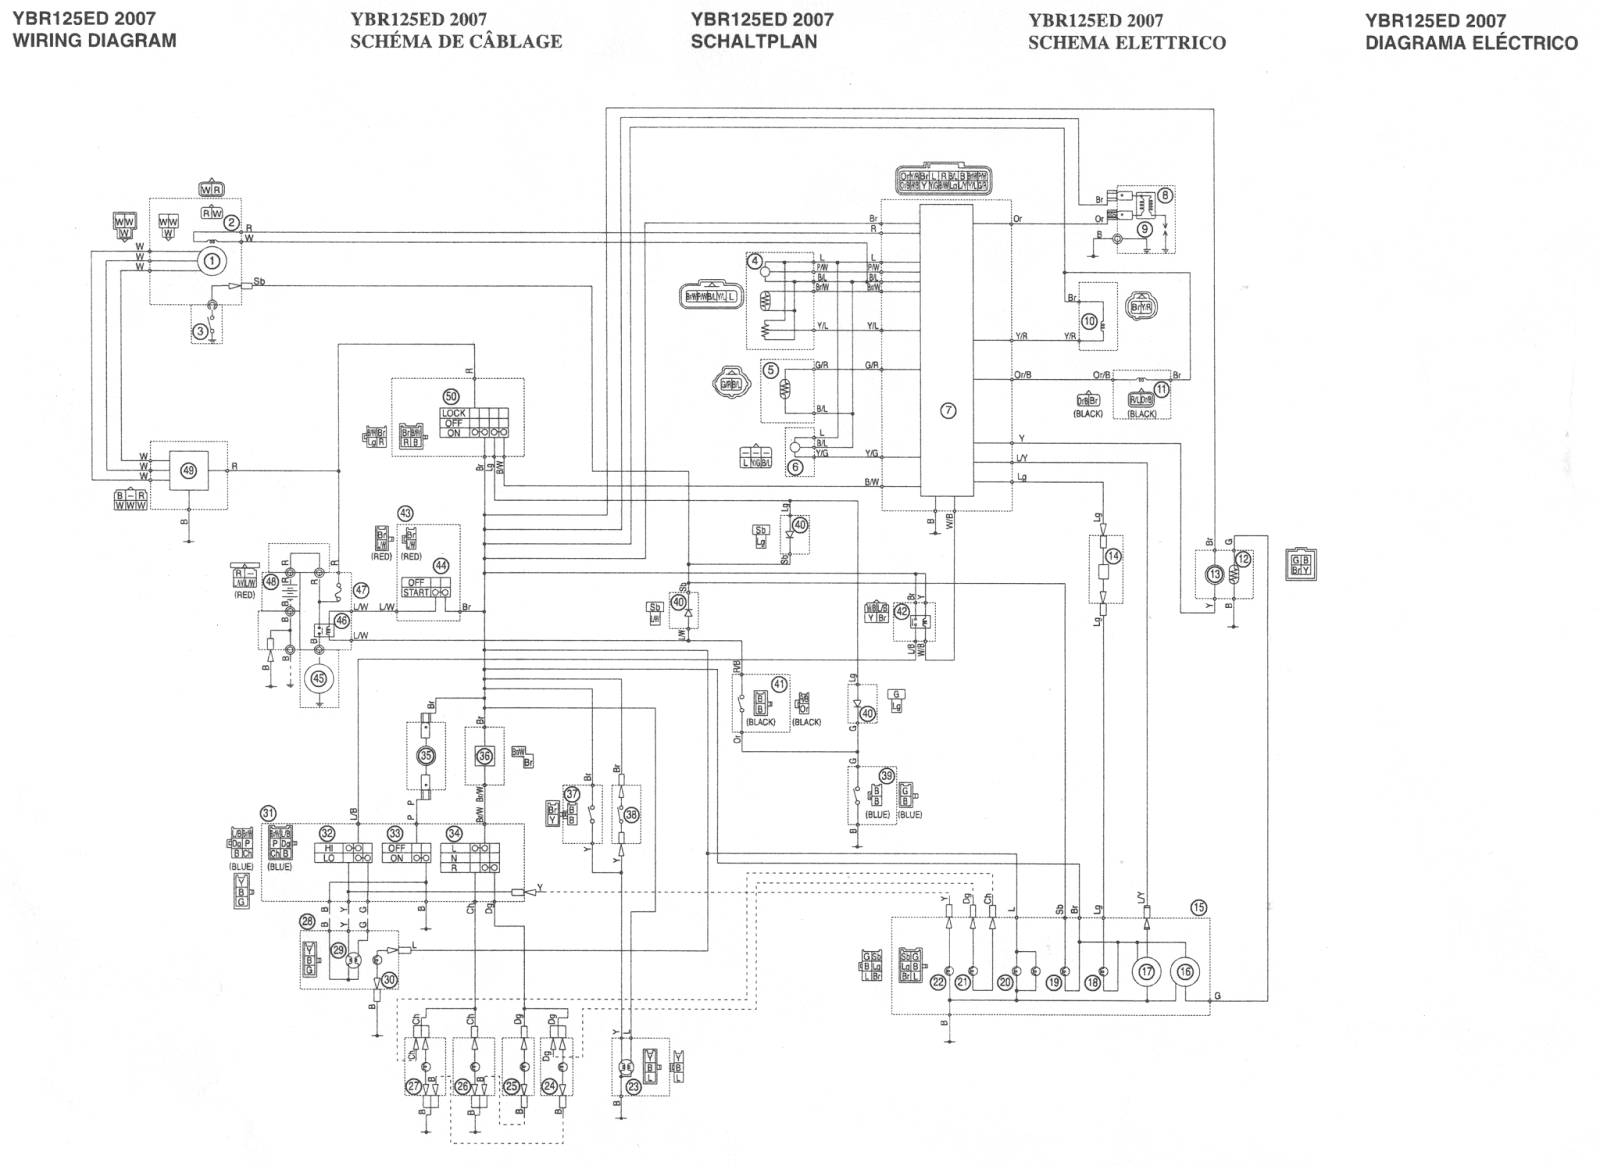 Yamaha Ybr 125 Electrical System Wiring on voltage regulator wiring diagram motorcycle